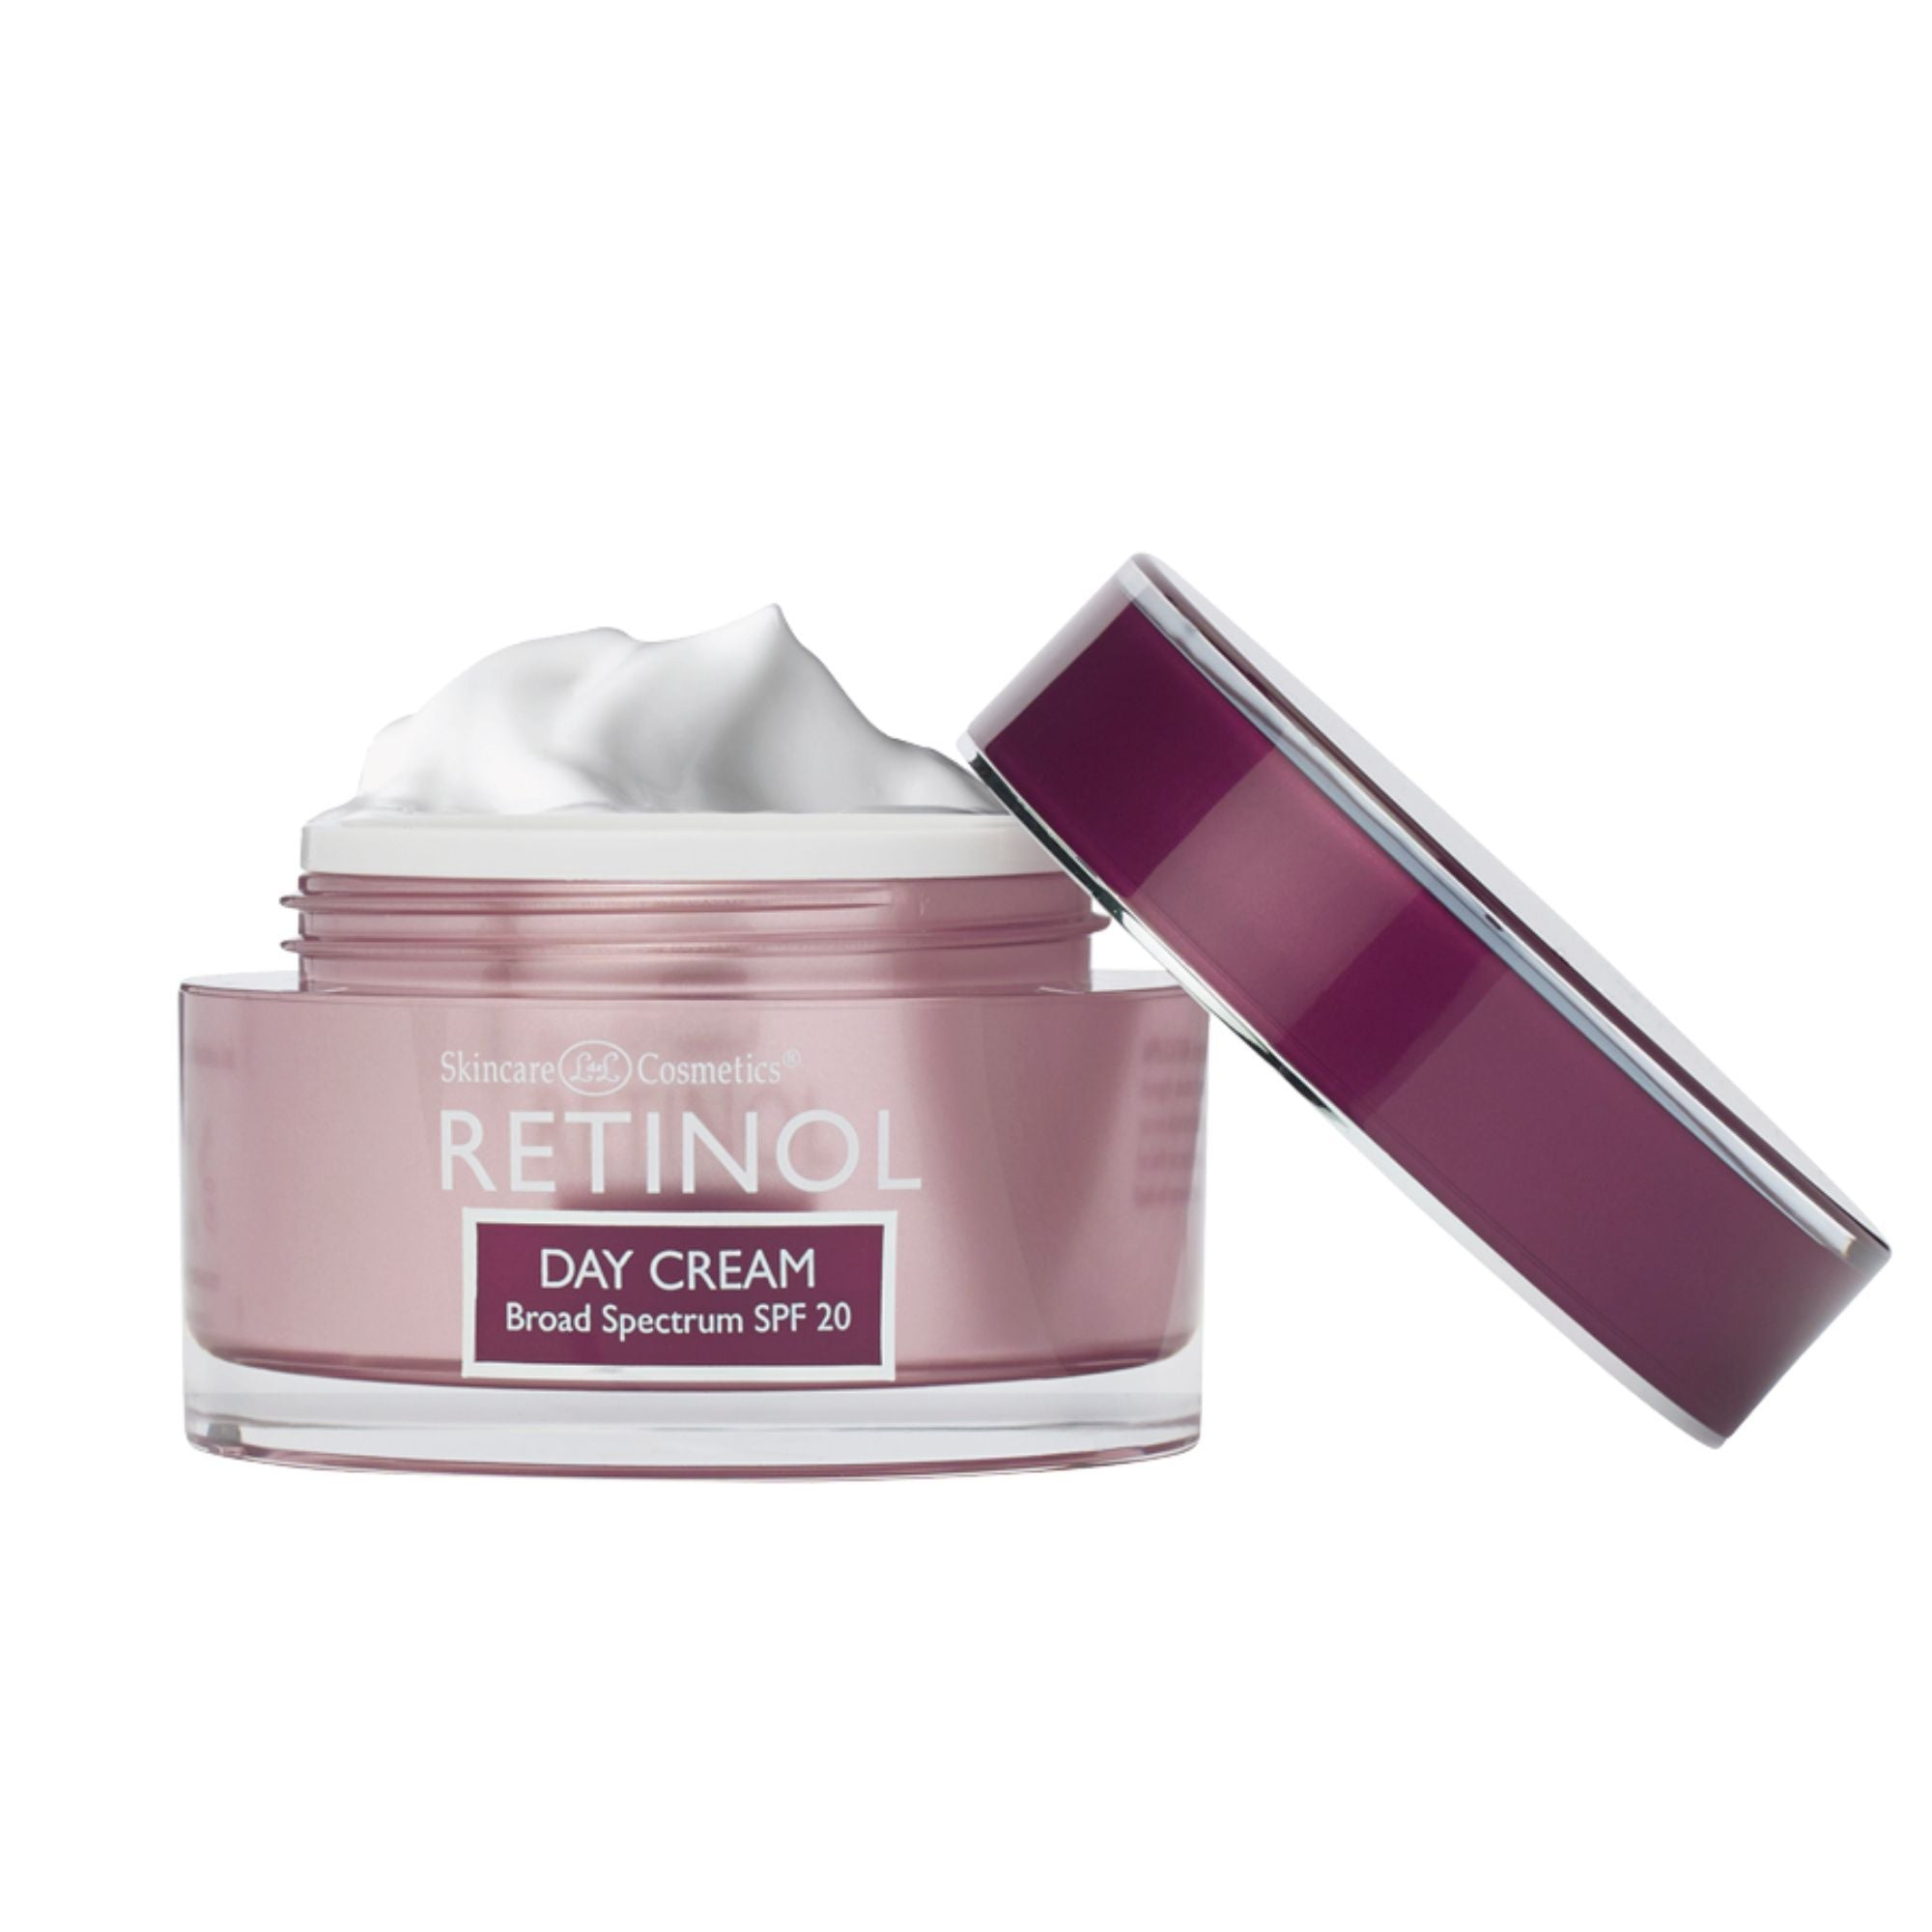 Day Cream Broad Spectrum SPF 20